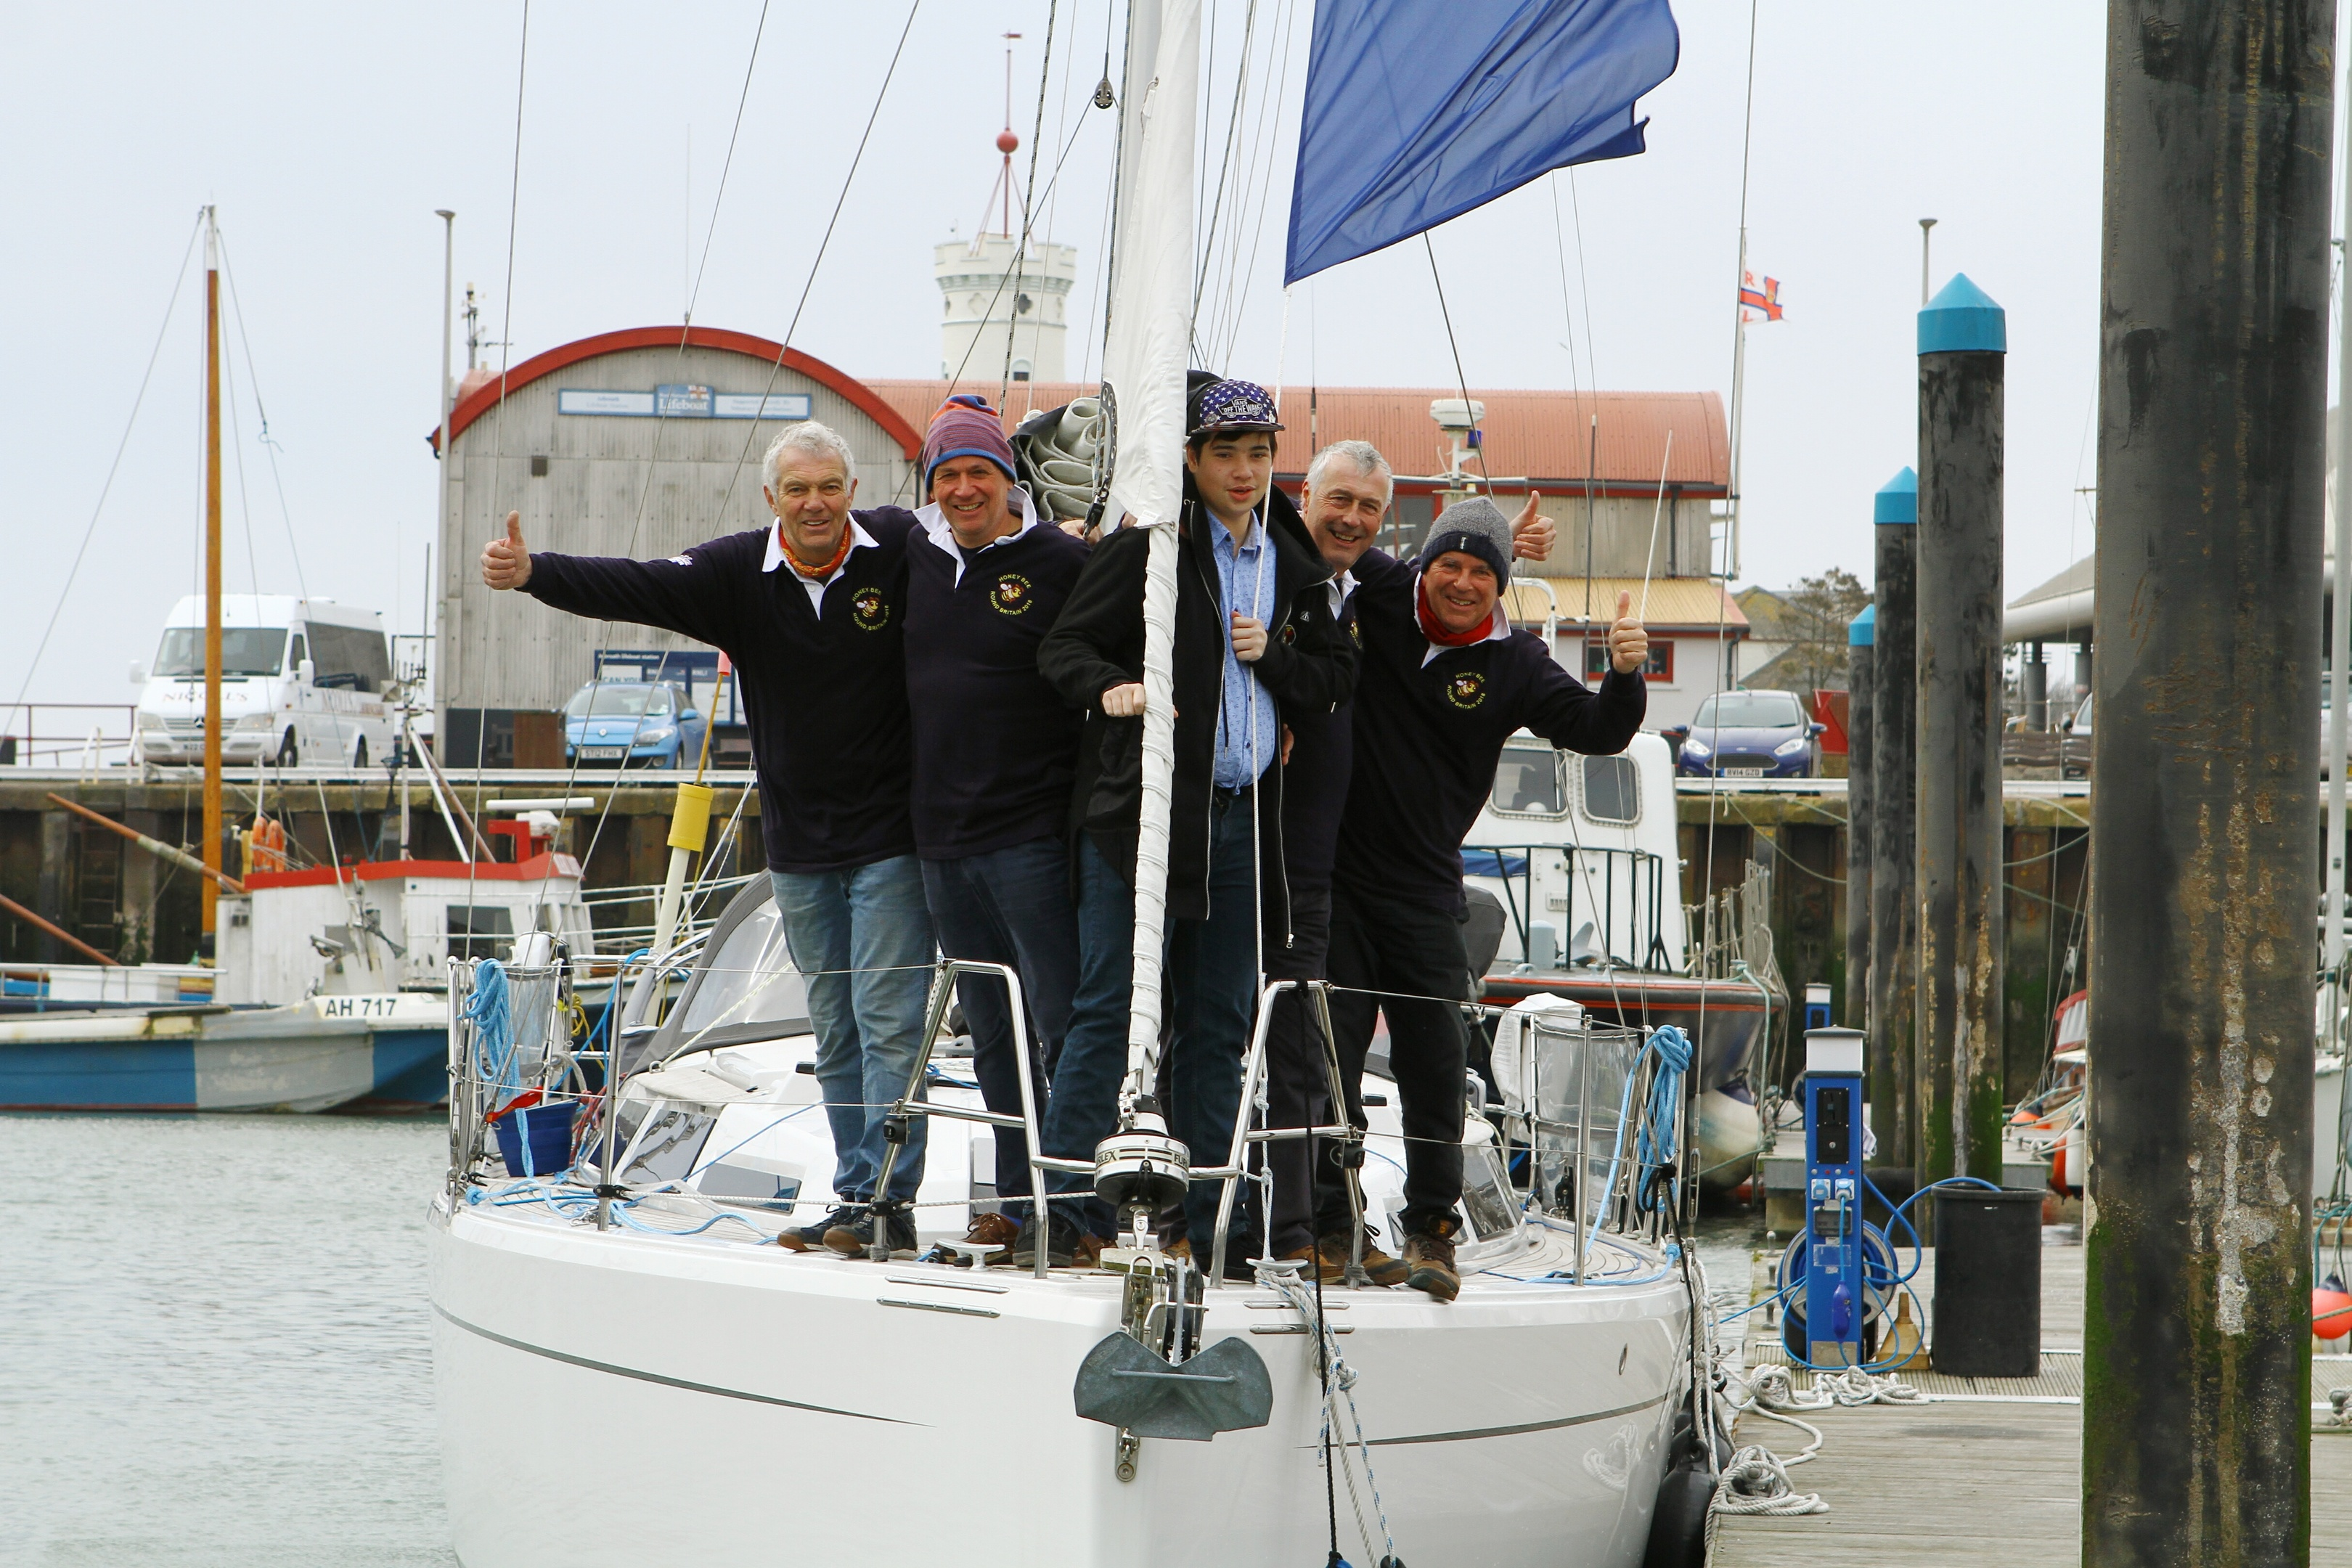 Peter Soddy, Mark Bales, Cameron Adam, Peter Best and Mike O'Brien aboard the Honey Bee at Arbroath marina